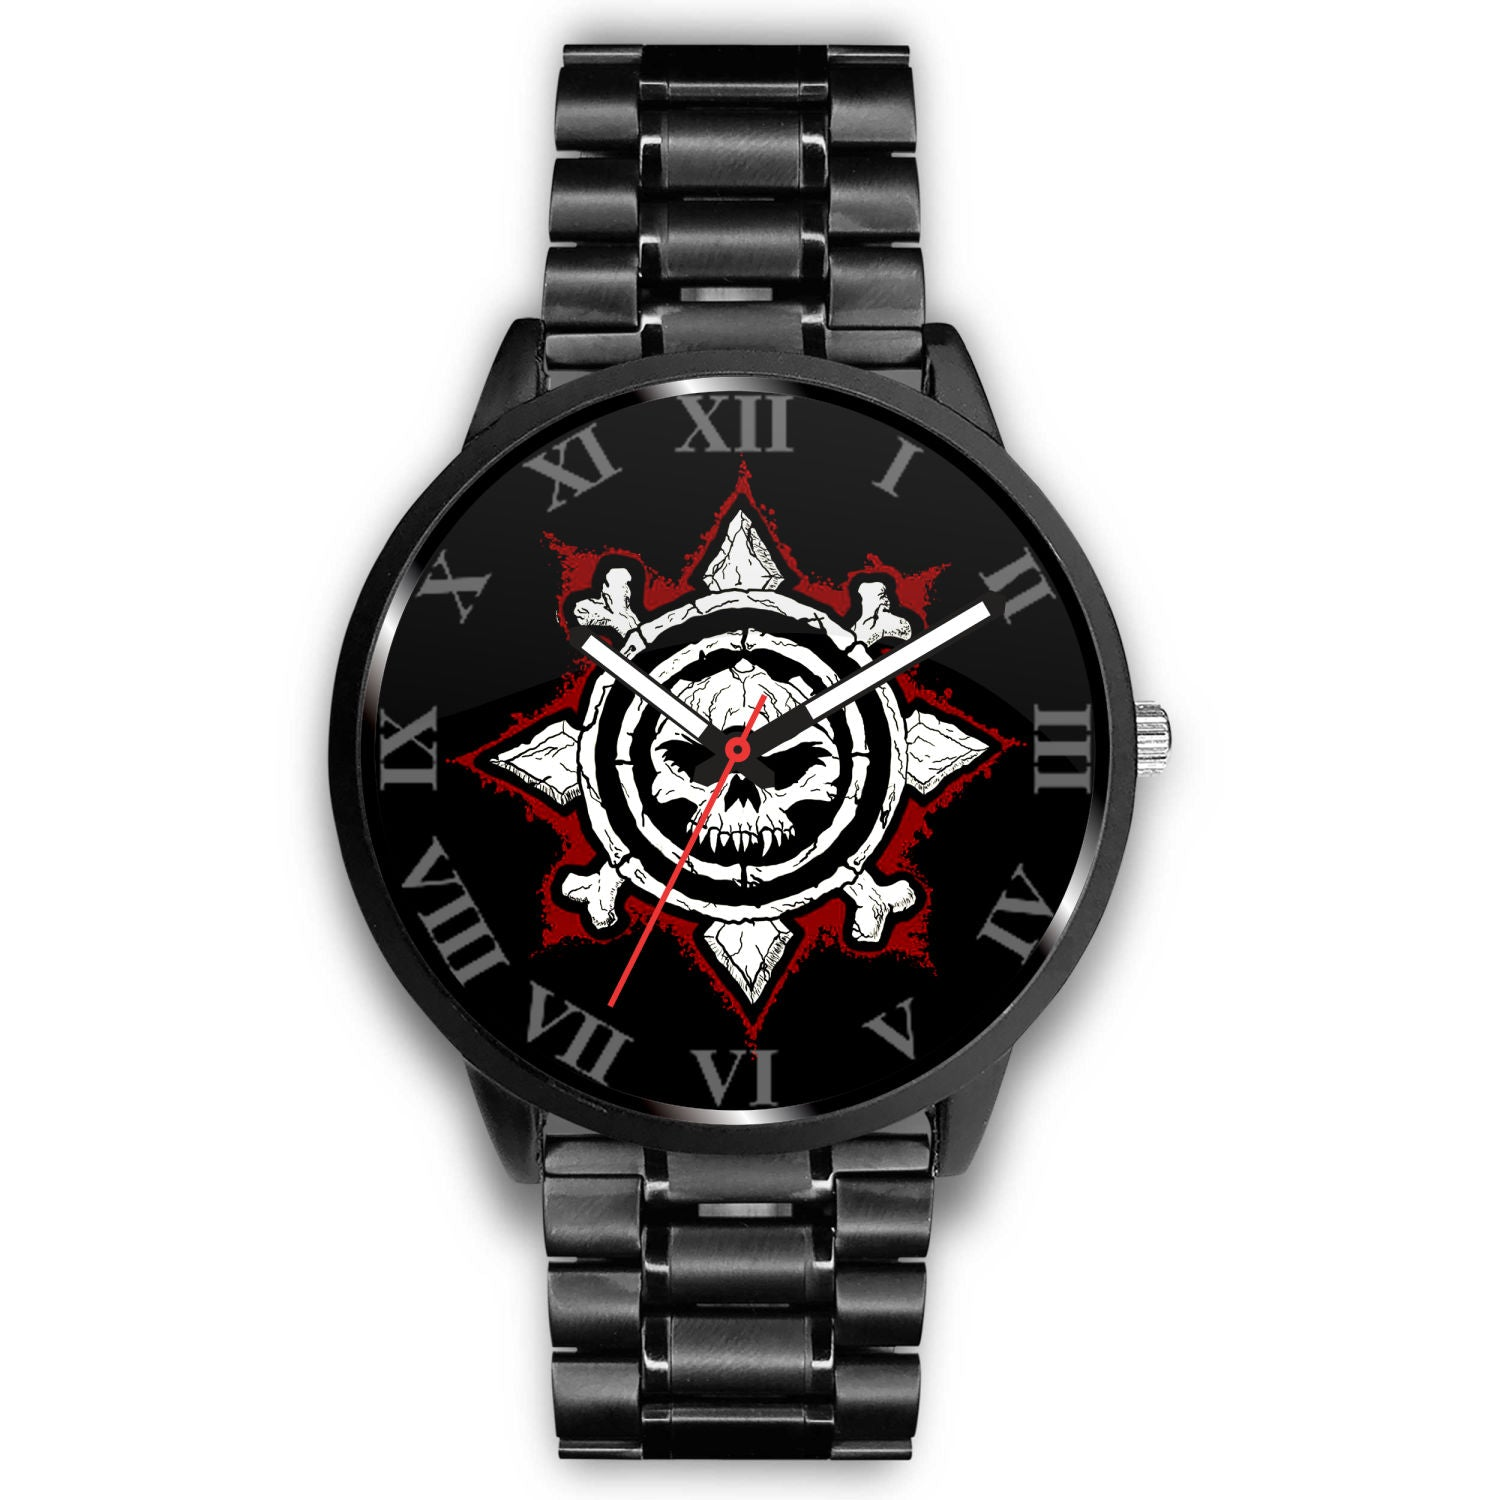 3D Skull Watch - Stainless steel back with leather/ stainless steel band 003